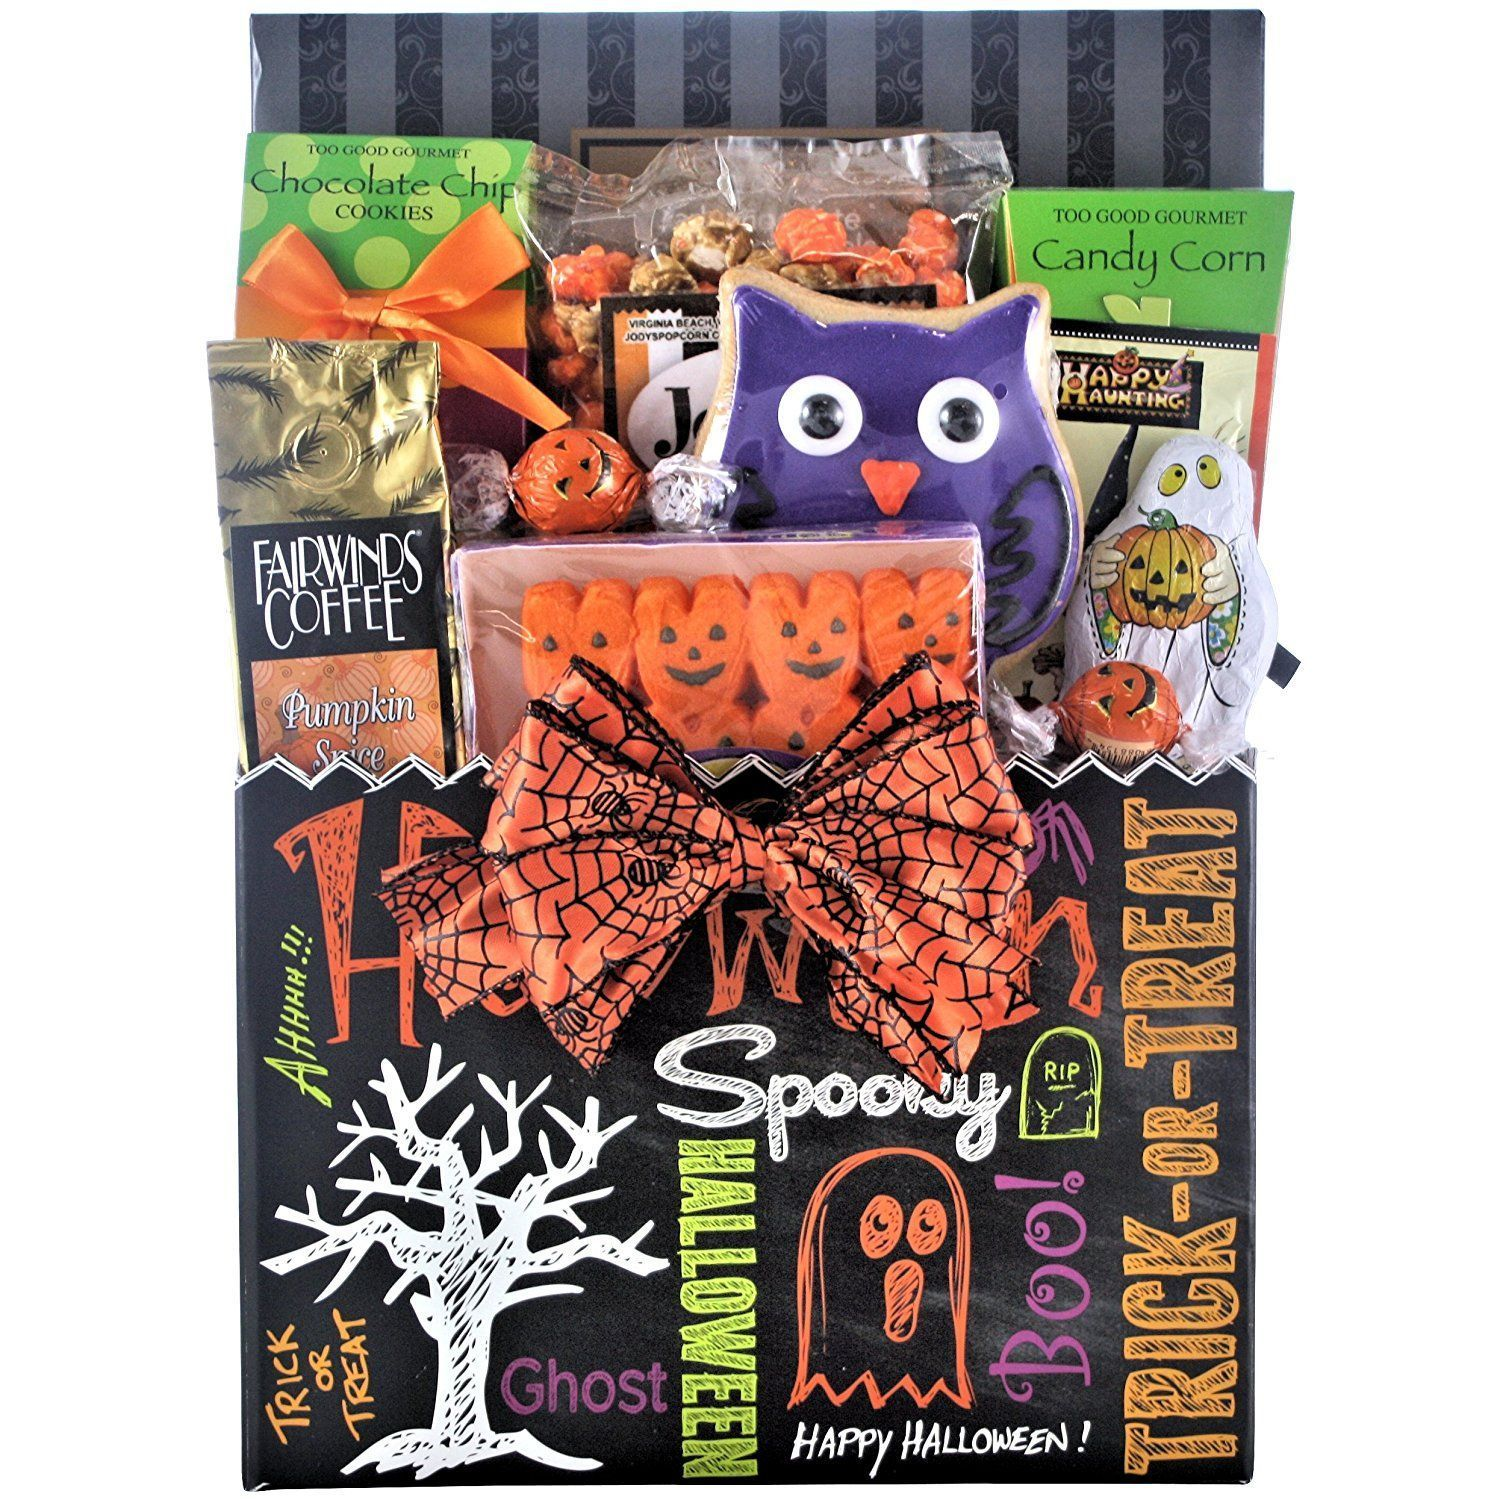 7 Spooky Halloween Gift Basket Ideas for Canada #spookybasketideas 7 Spooky Halloween Gift Basket Ideas for Canada #spookybasketideas 7 Spooky Halloween Gift Basket Ideas for Canada #spookybasketideas 7 Spooky Halloween Gift Basket Ideas for Canada #spookybasketideas